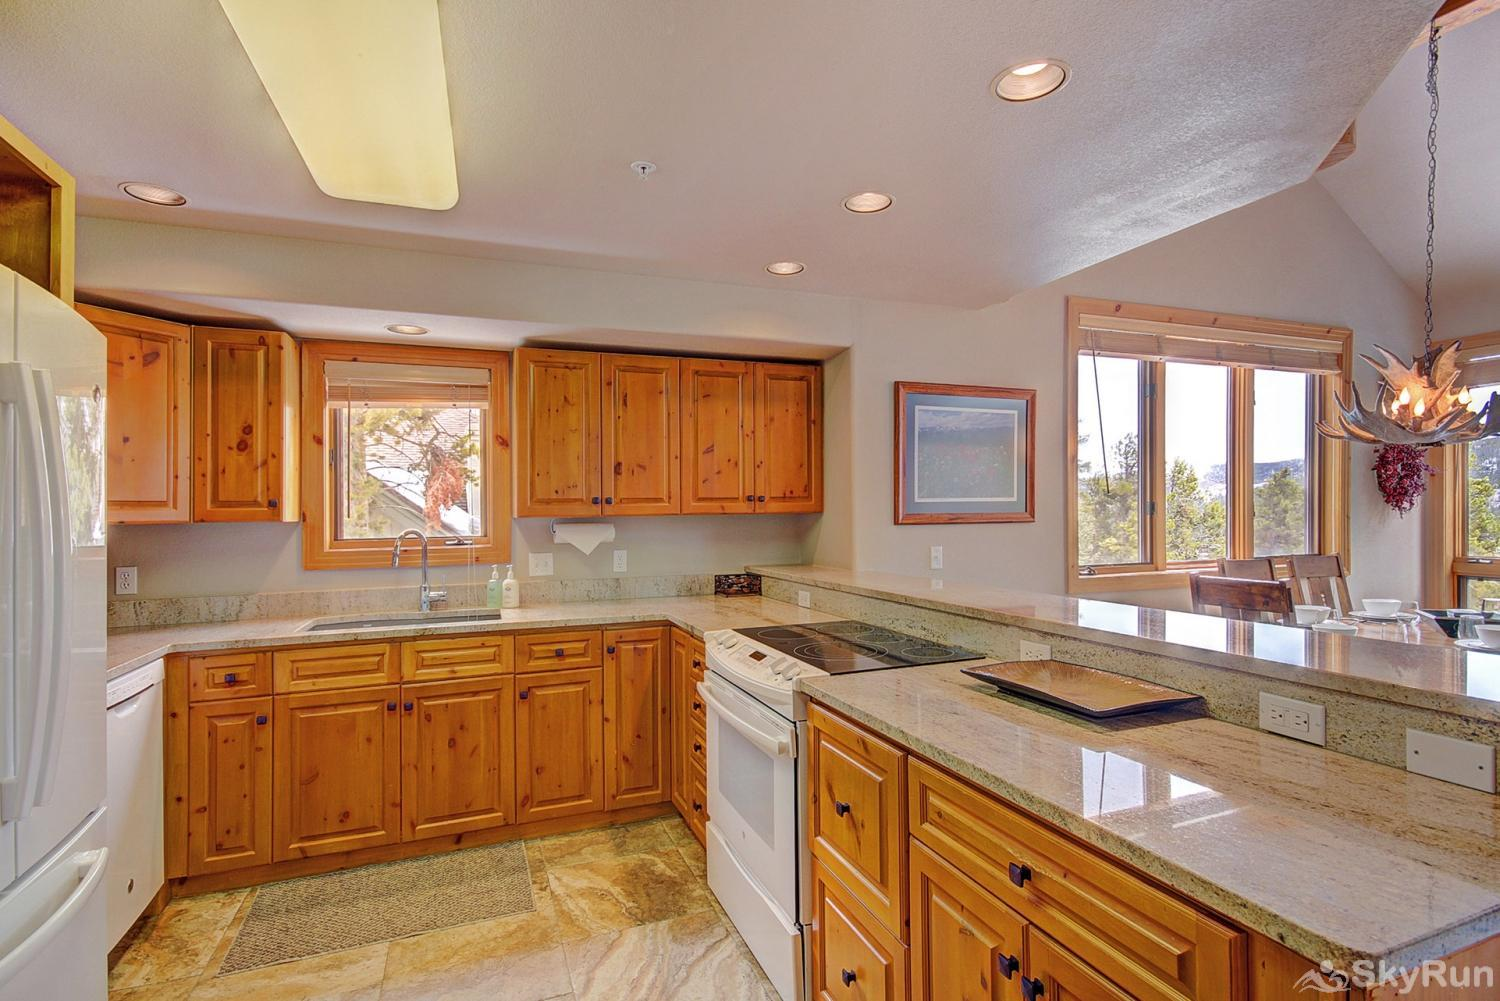 Elk Ridge Retreat Enjoy tasty home-cooked meals from the comforts of a fully equipped kitchen